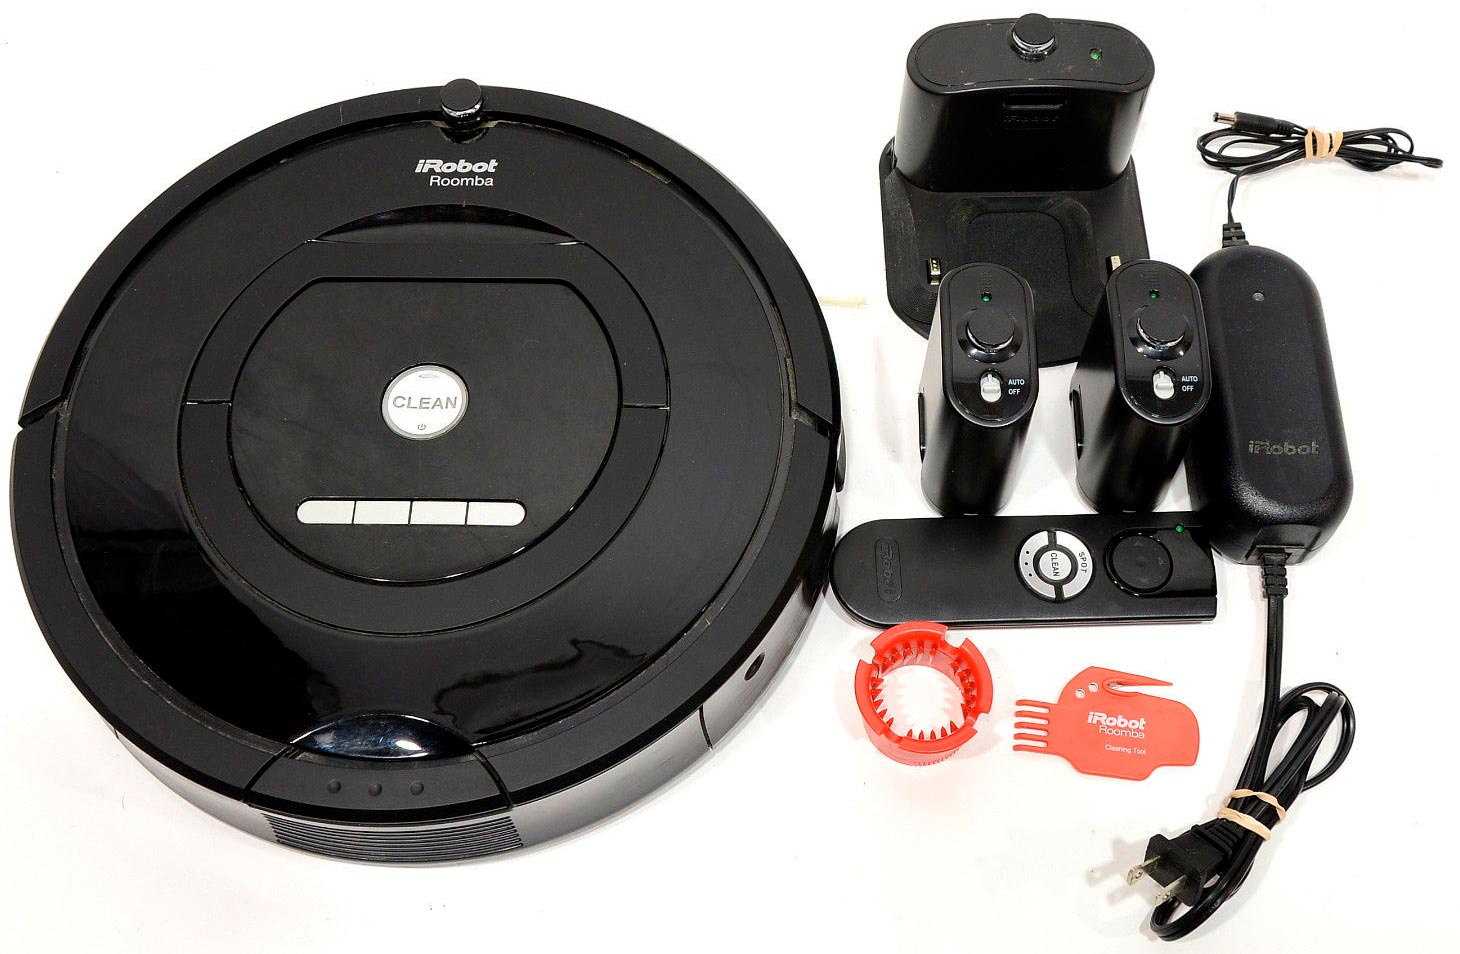 iRobot Roomba 770 Robotic Vacuum Cleaner what is in the box